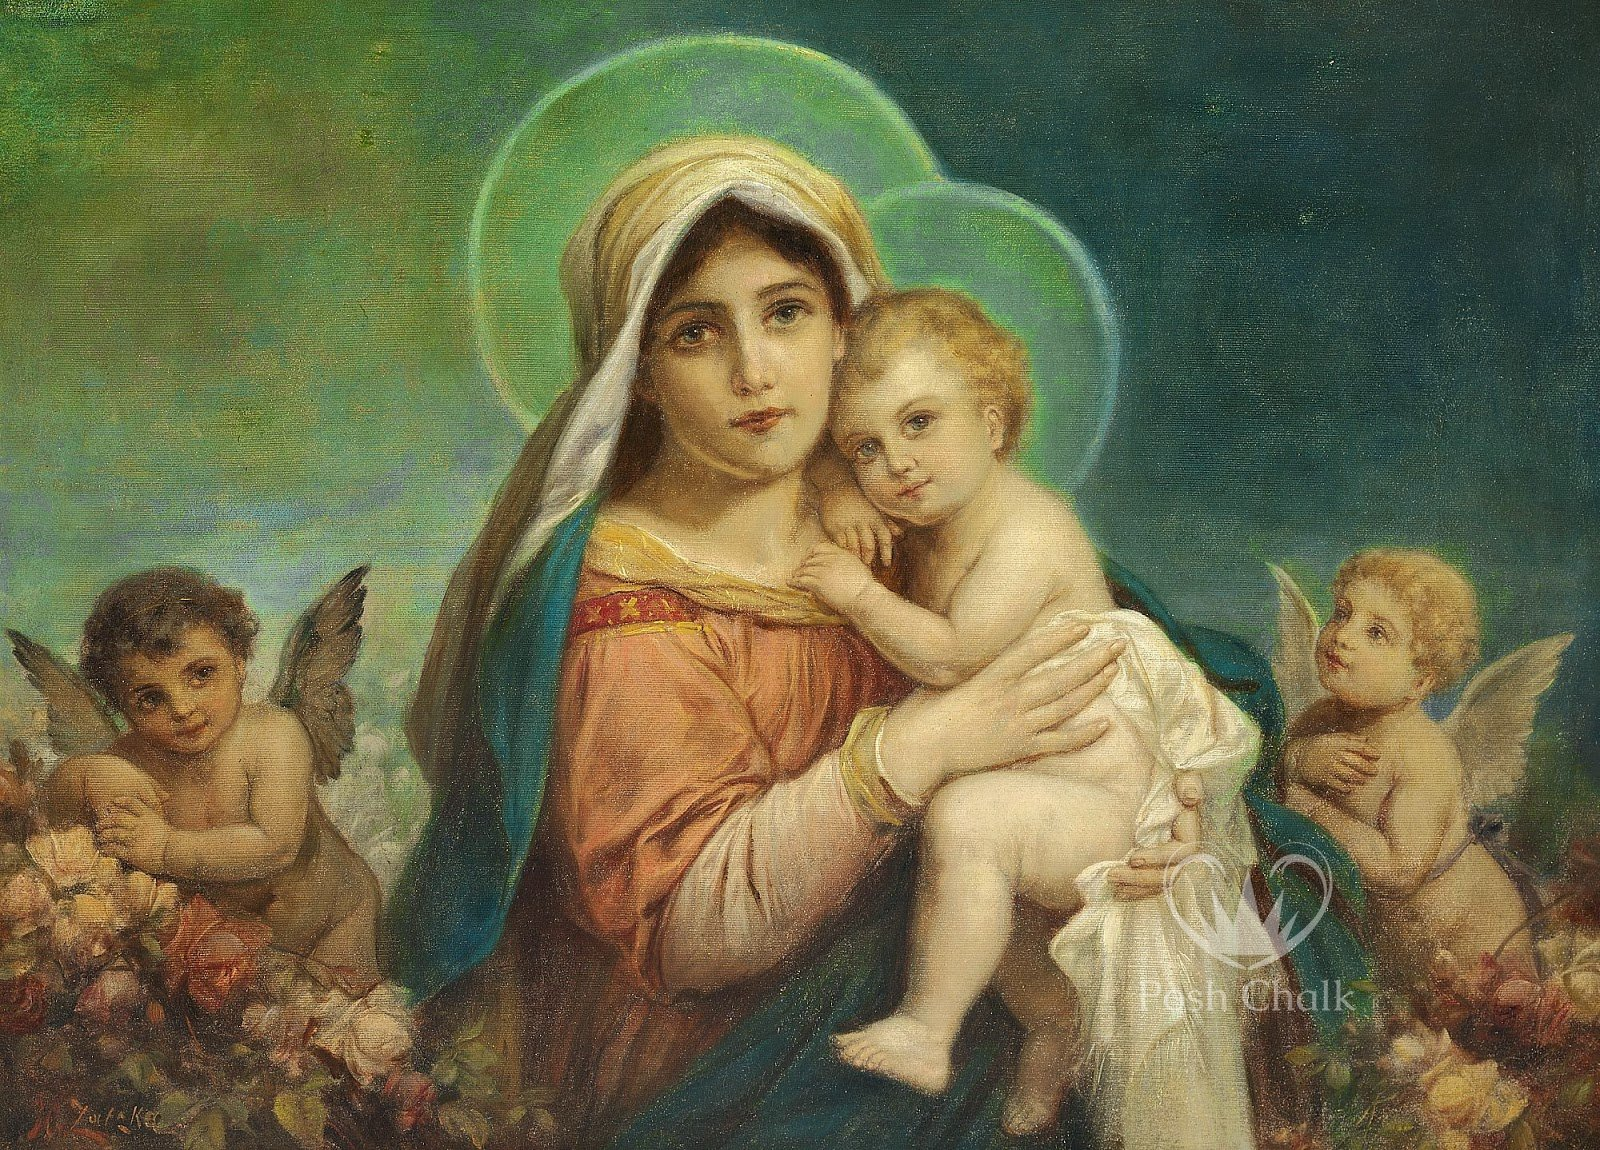 A decouapge design against an aqua background showing a madonna and child image in the foreground with halos around their heads. At either side two cherubs look on adoringly.